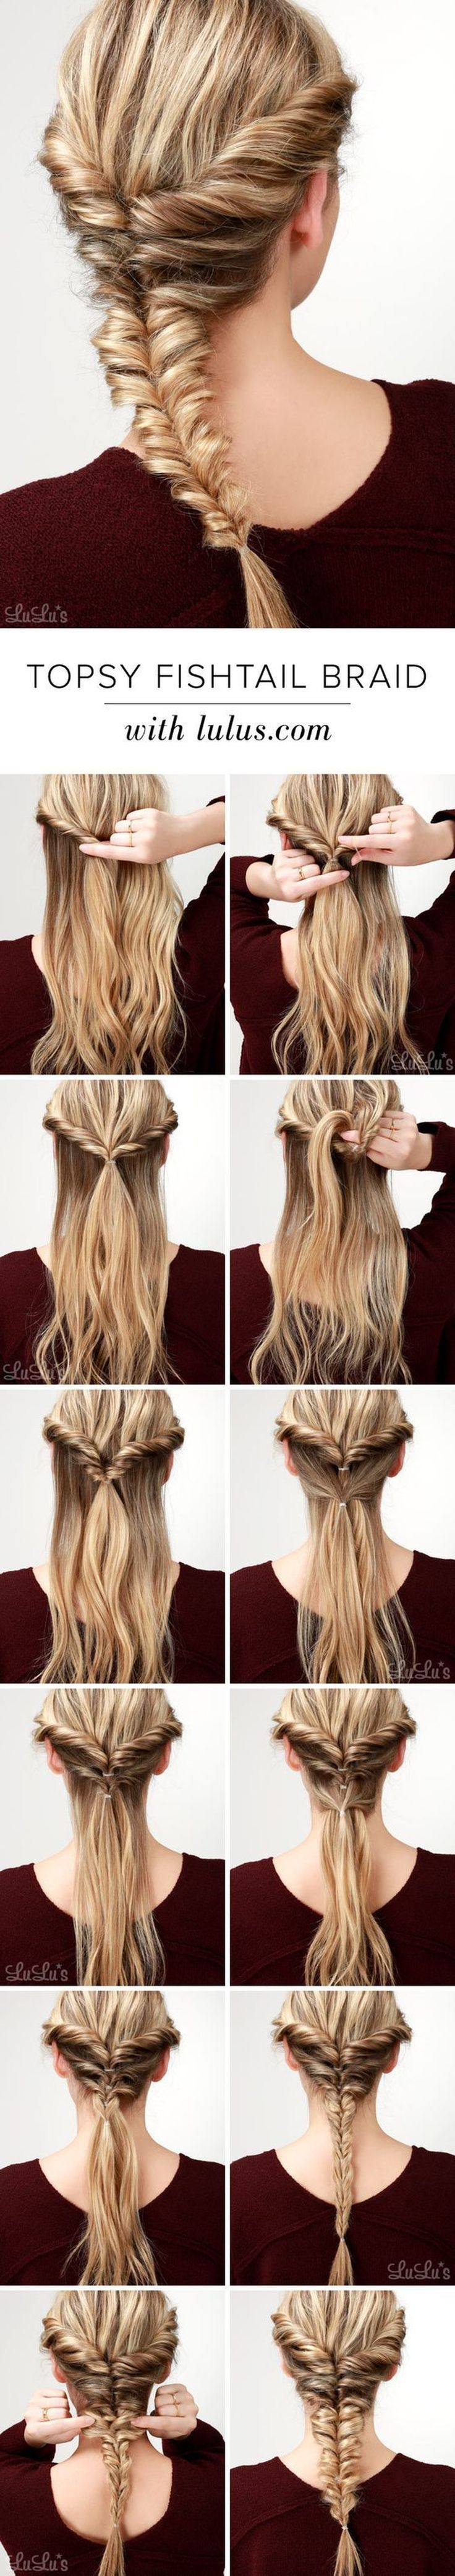 386 best Hairstyle ideas images on Pinterest